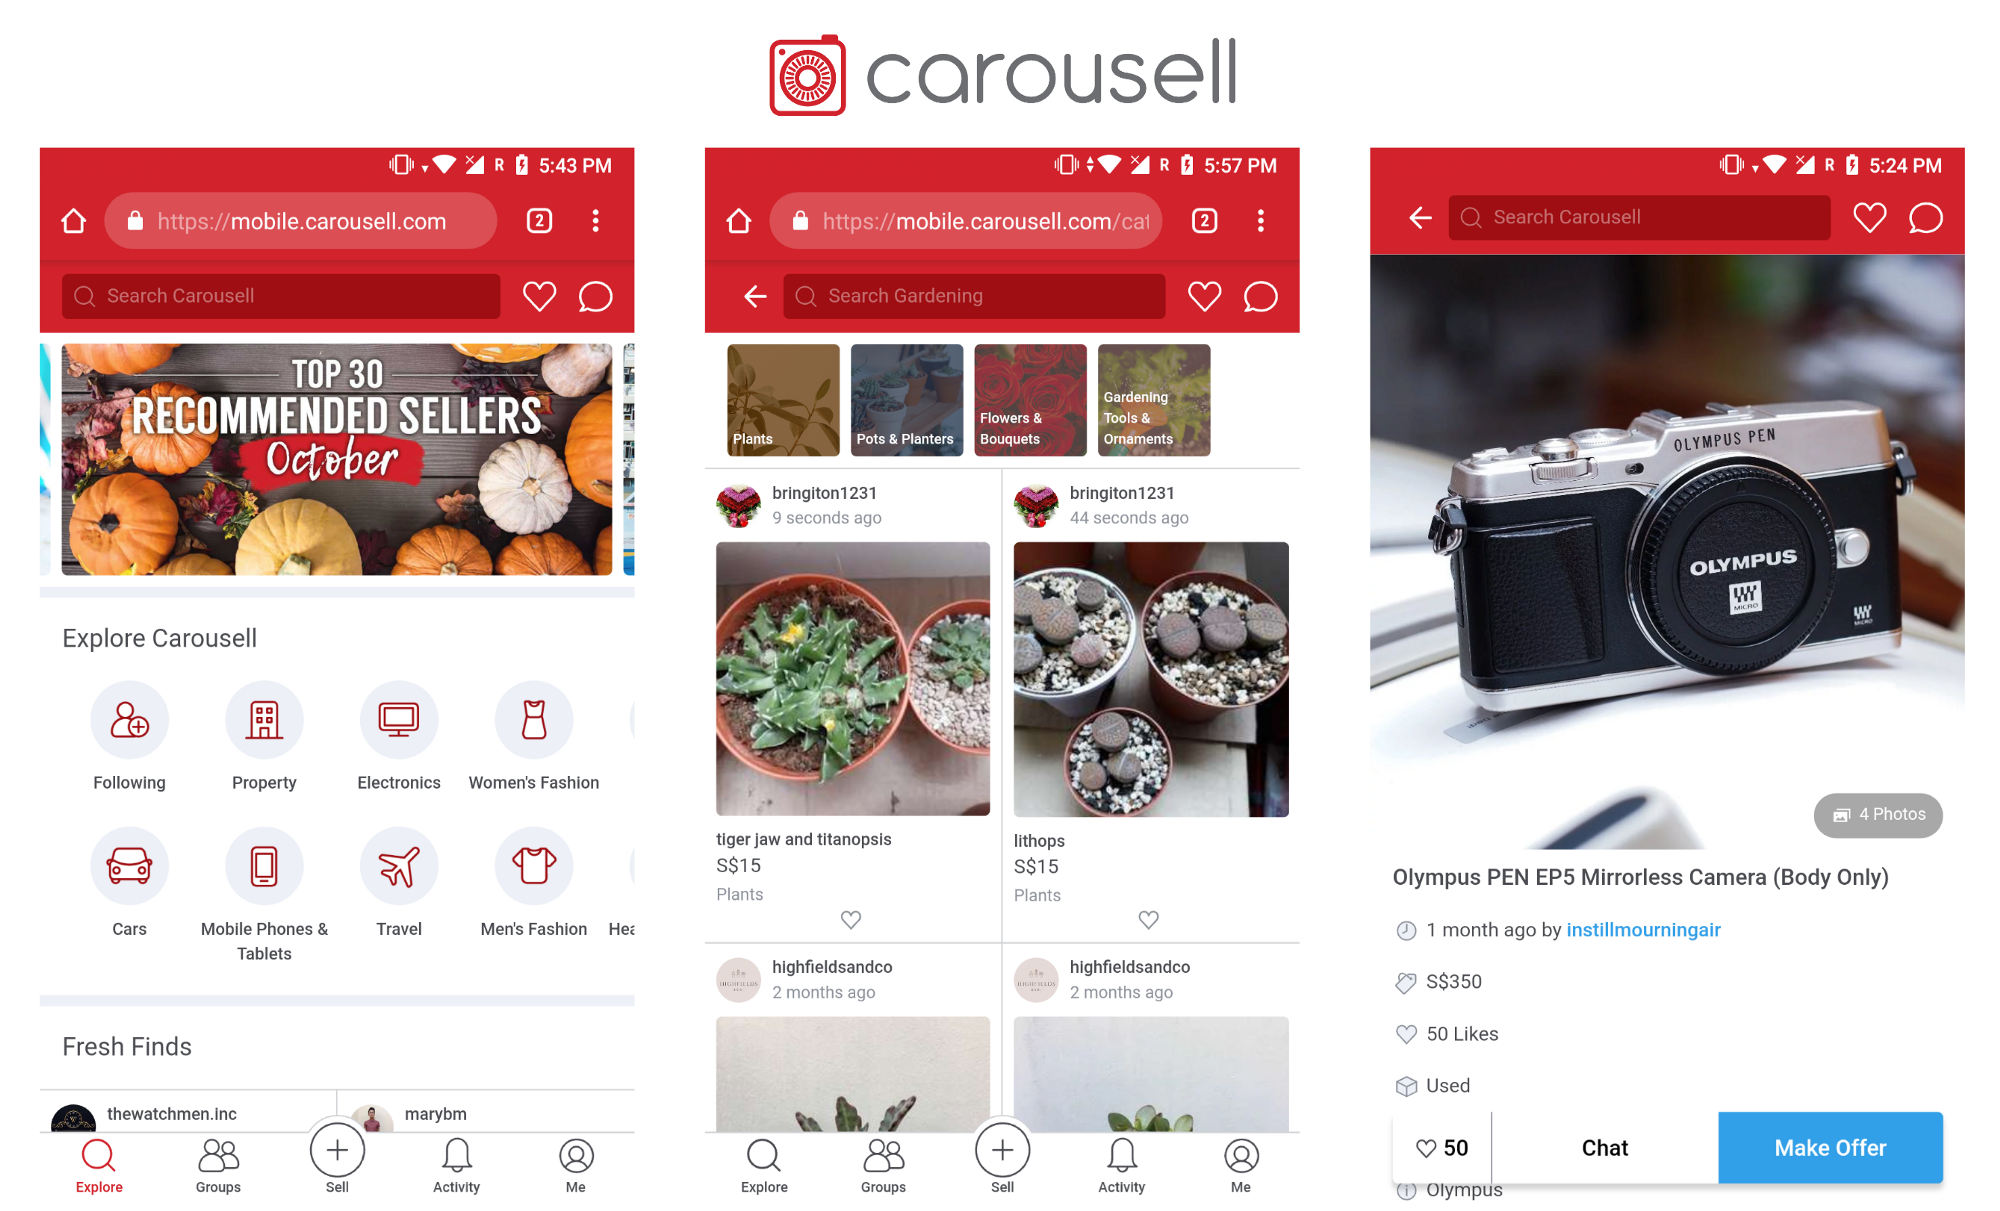 How we made Carousell's mobile web experience 3x faster